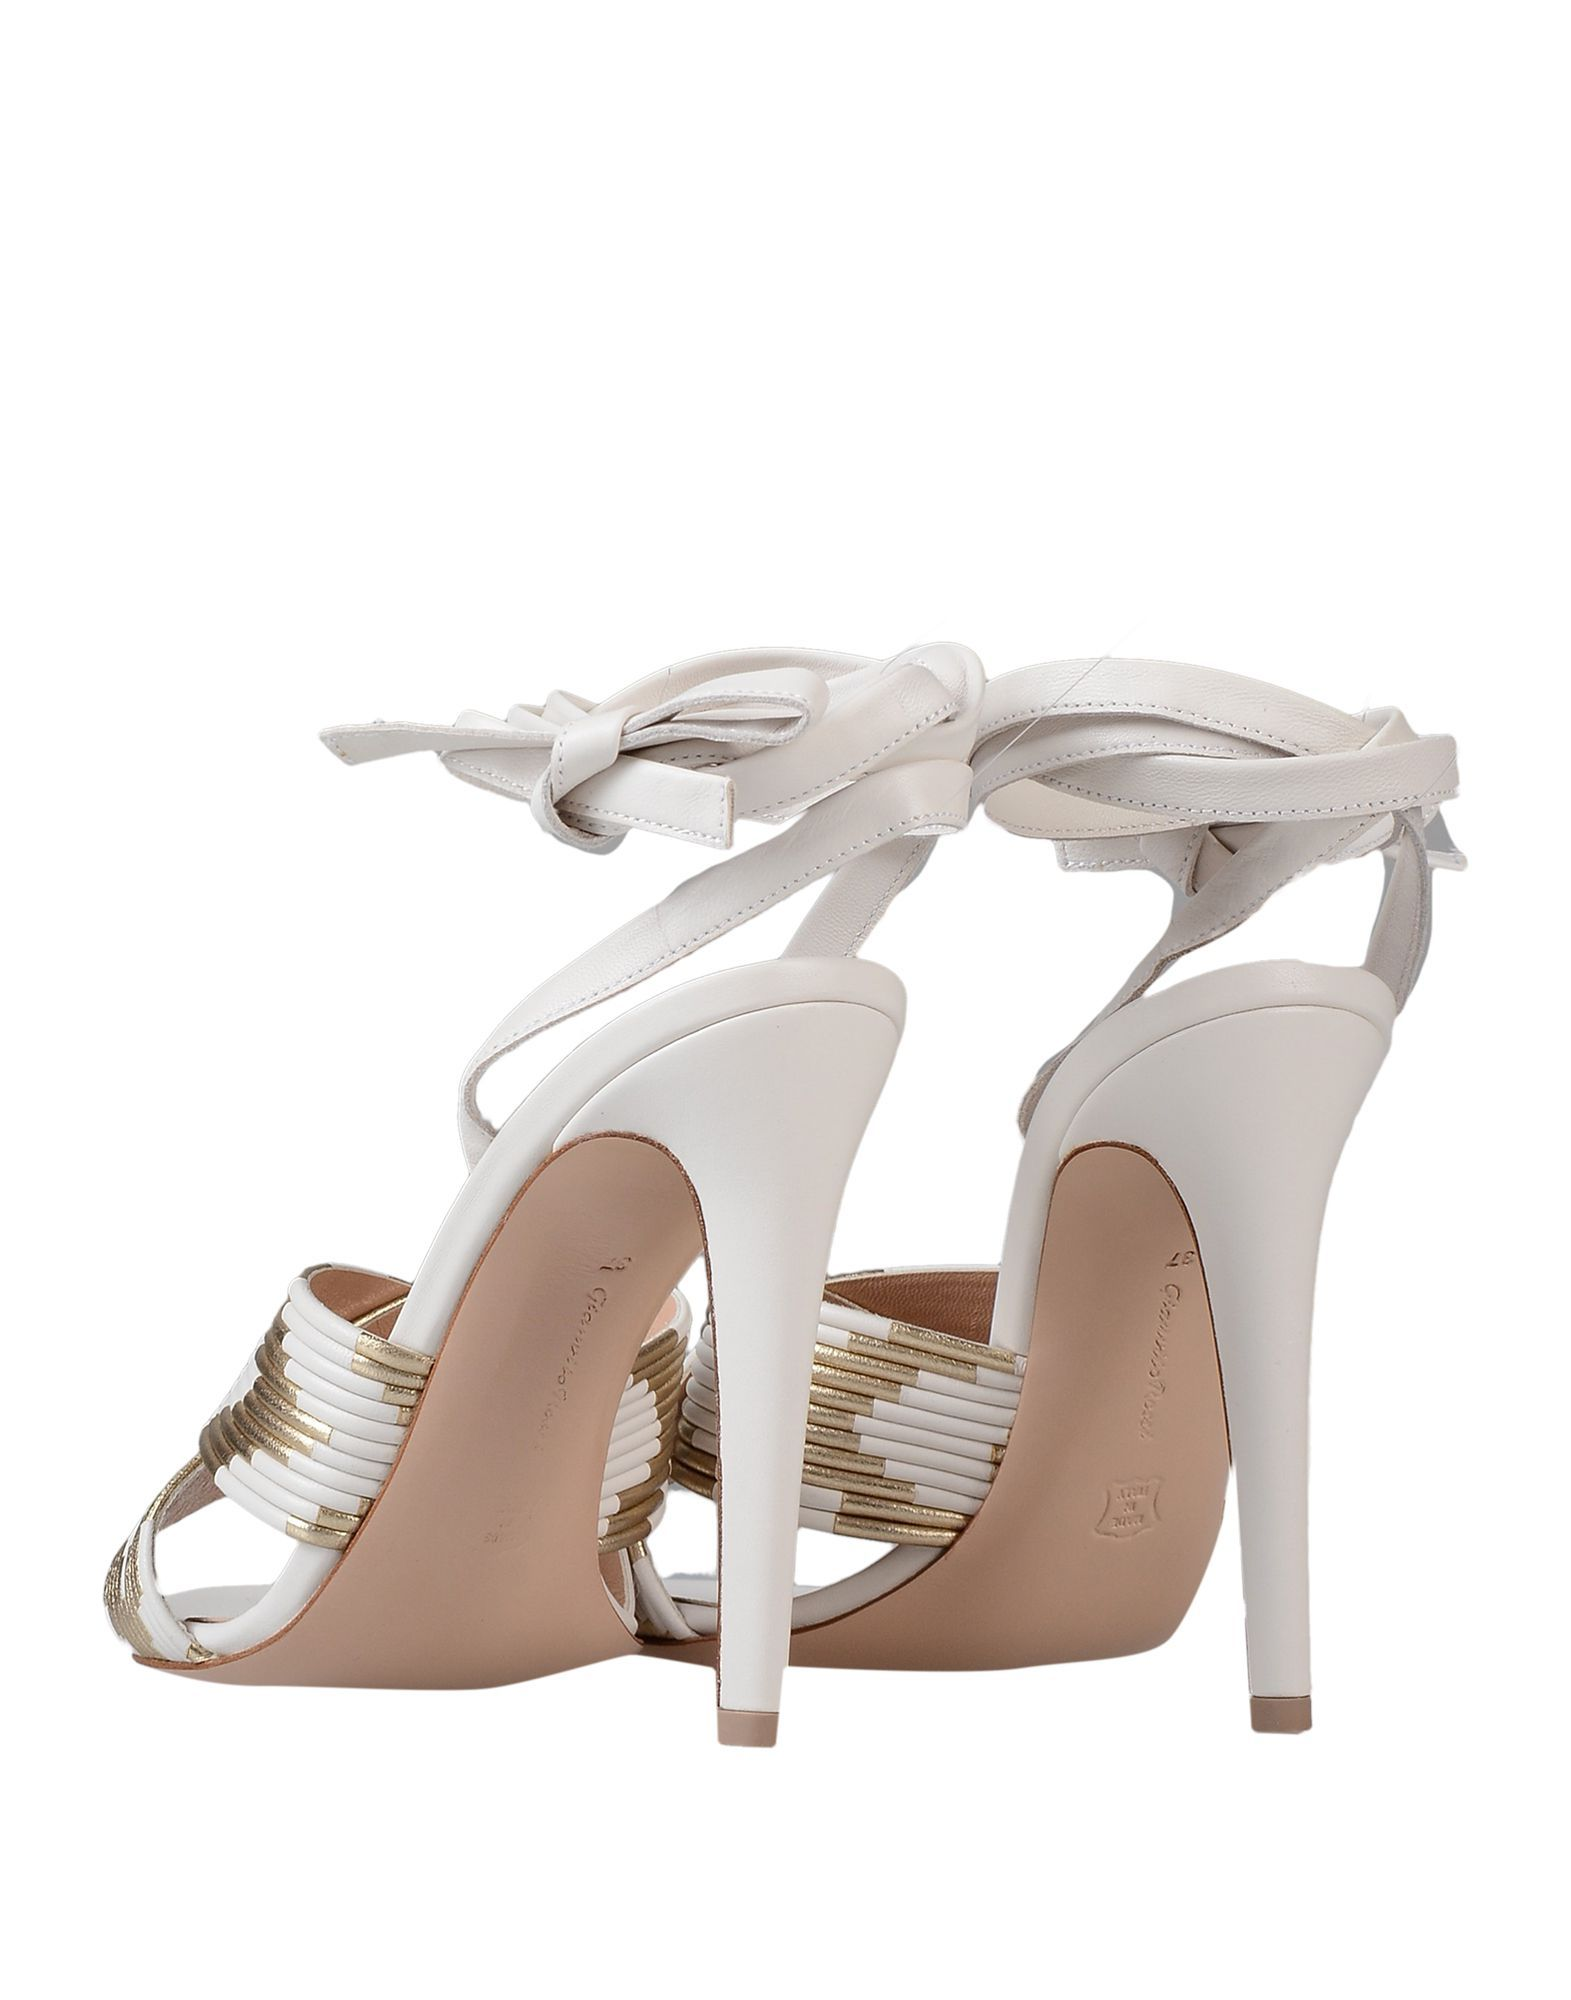 Gianvito Rossi White Leather Heeled Sandals